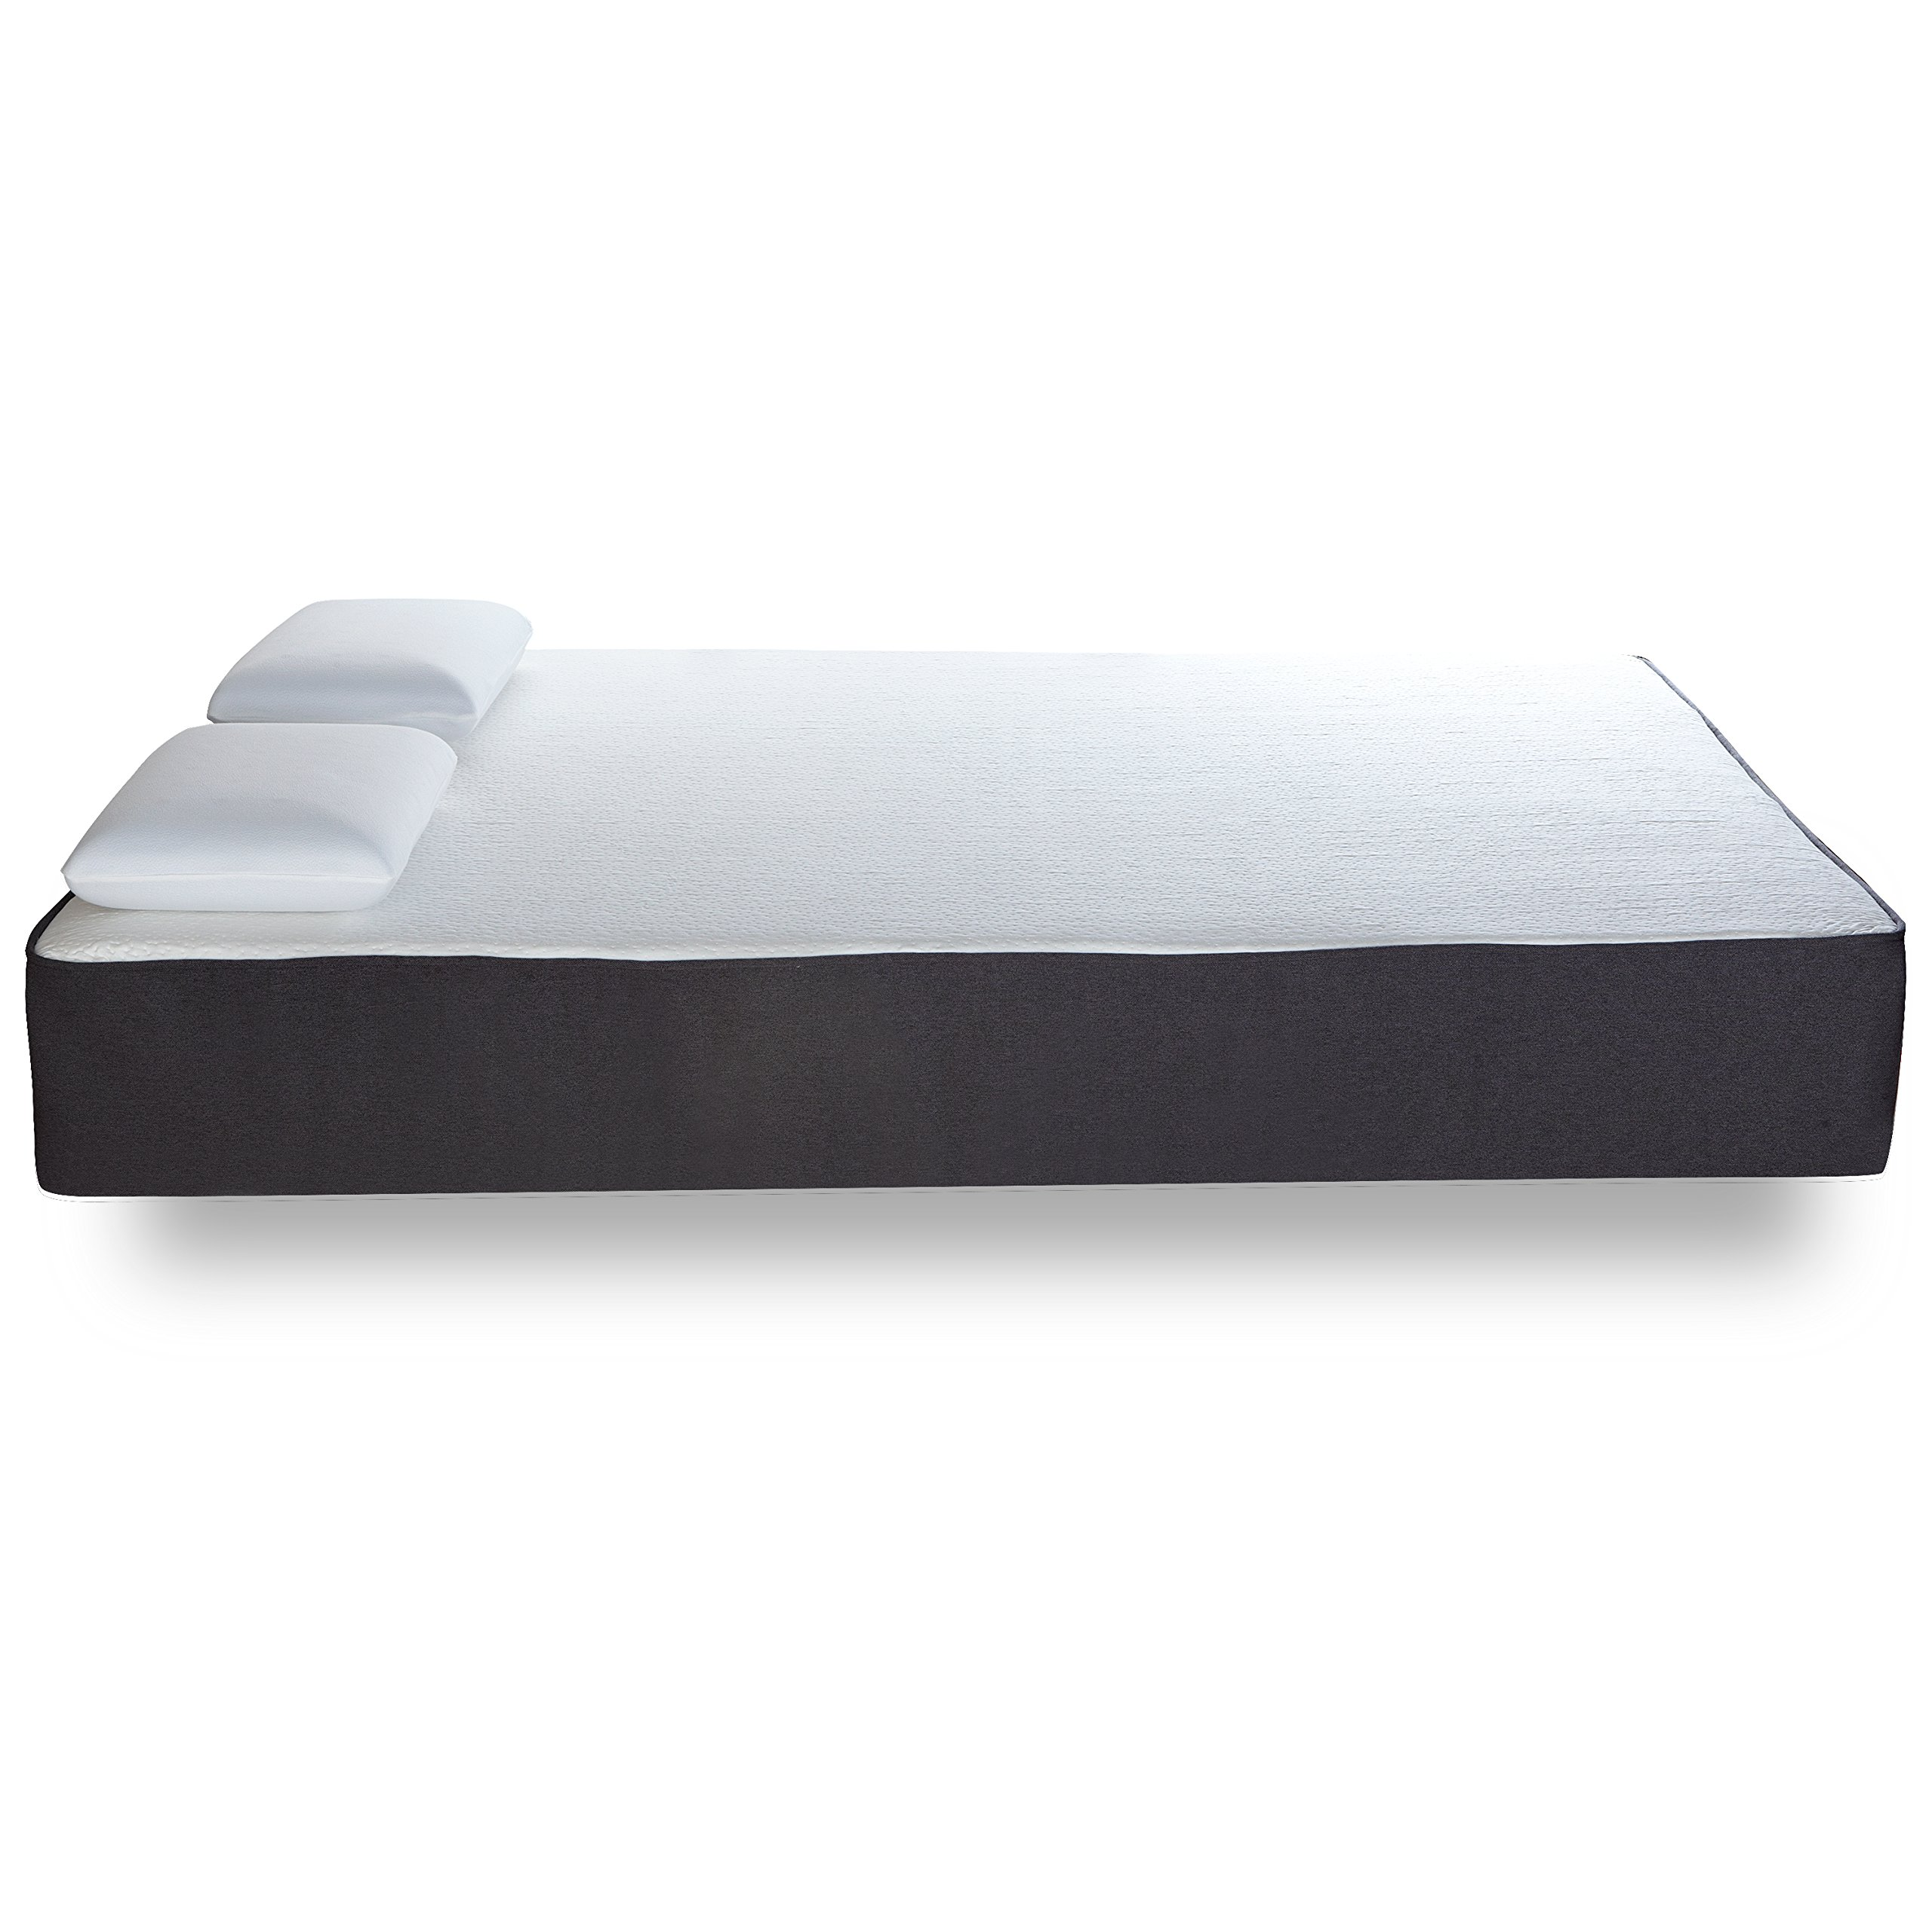 Classic Brands 10 5 Inch Cool Gel Ventilated Memory Foam Mattress Queen Ebay